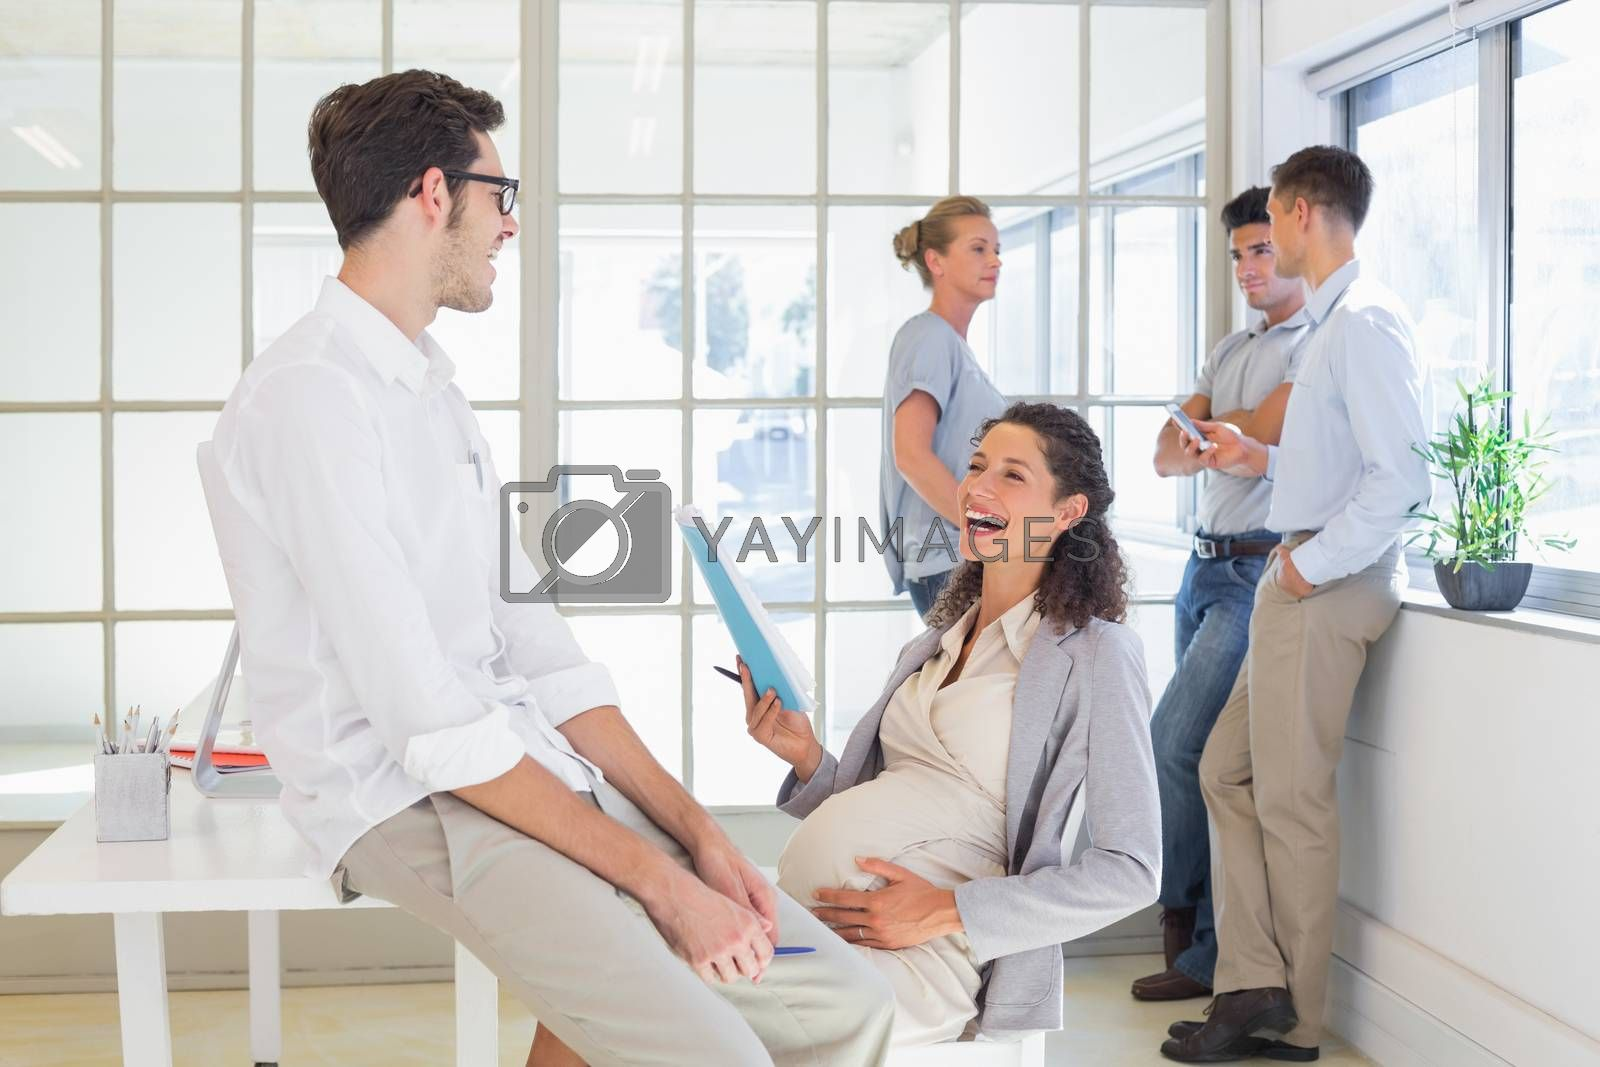 Royalty free image of Pregnant businesswoman laughing with colleague by Wavebreakmedia